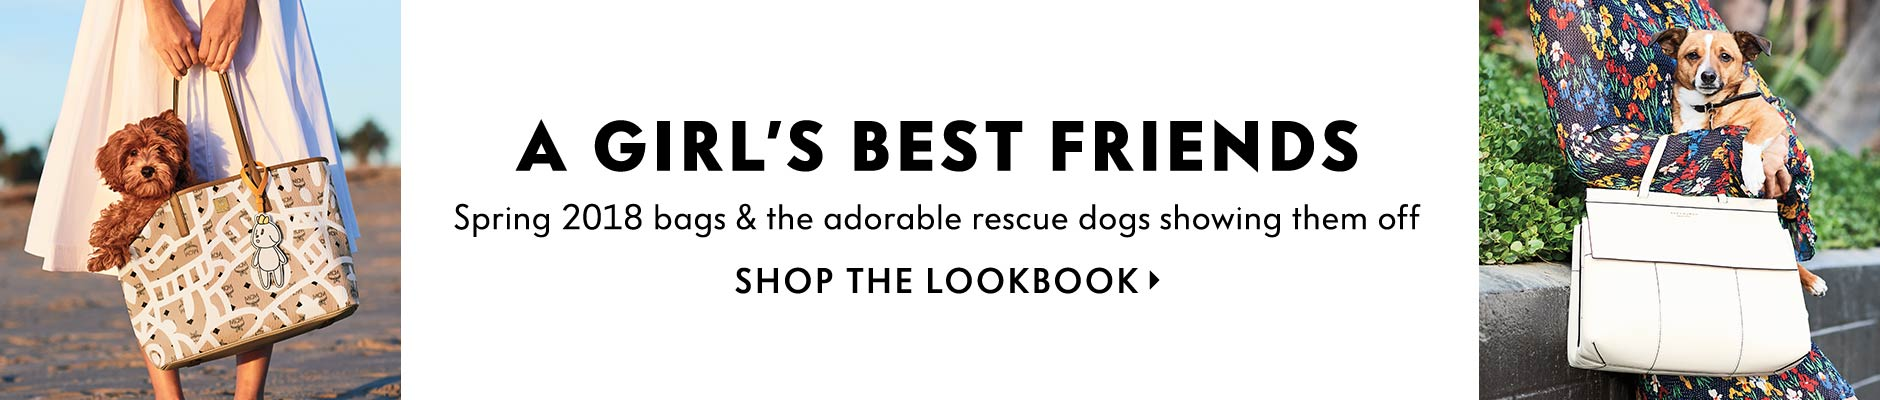 A Girl's Best Friends - Spring 2018 bags & the adorable rescue dogs showing them off